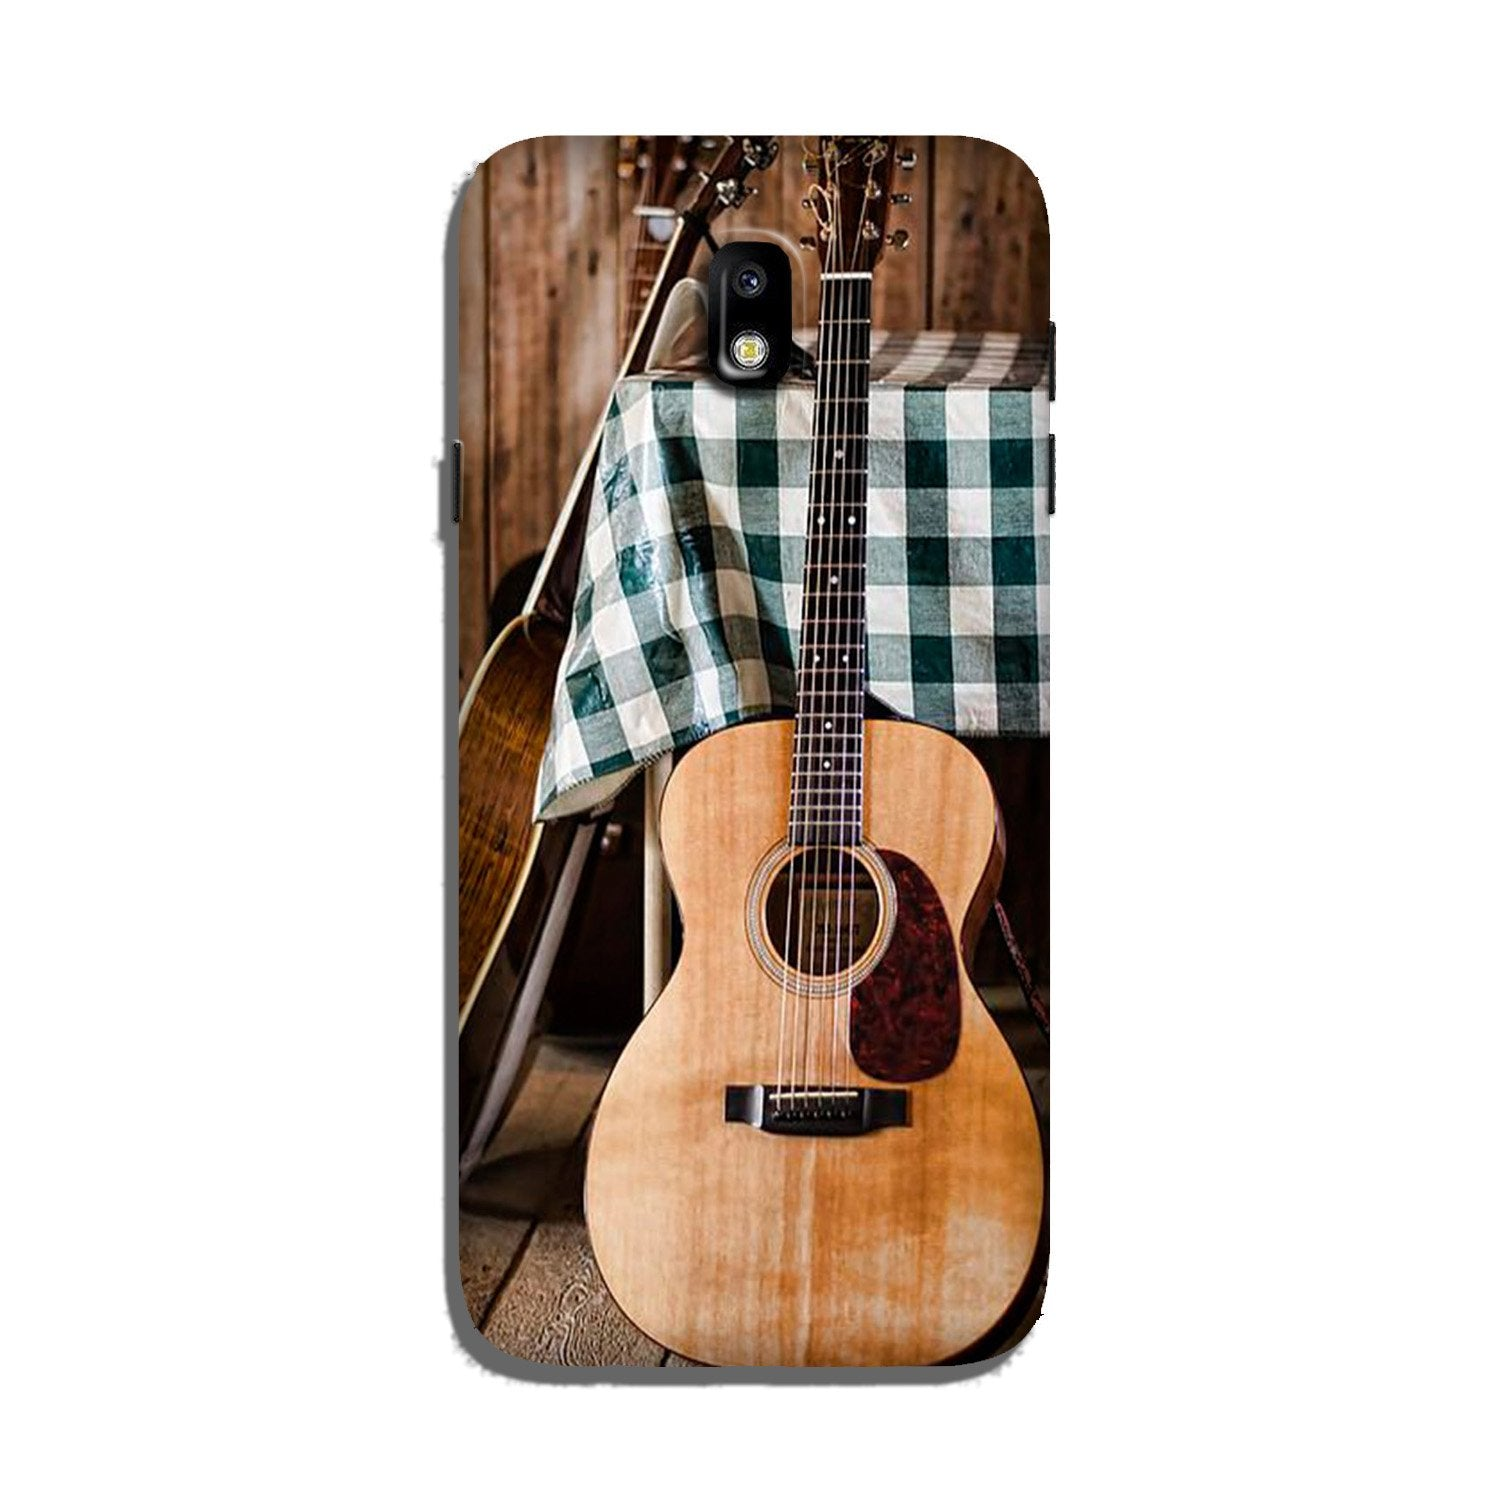 Guitar2 Case for Galaxy J7 Pro